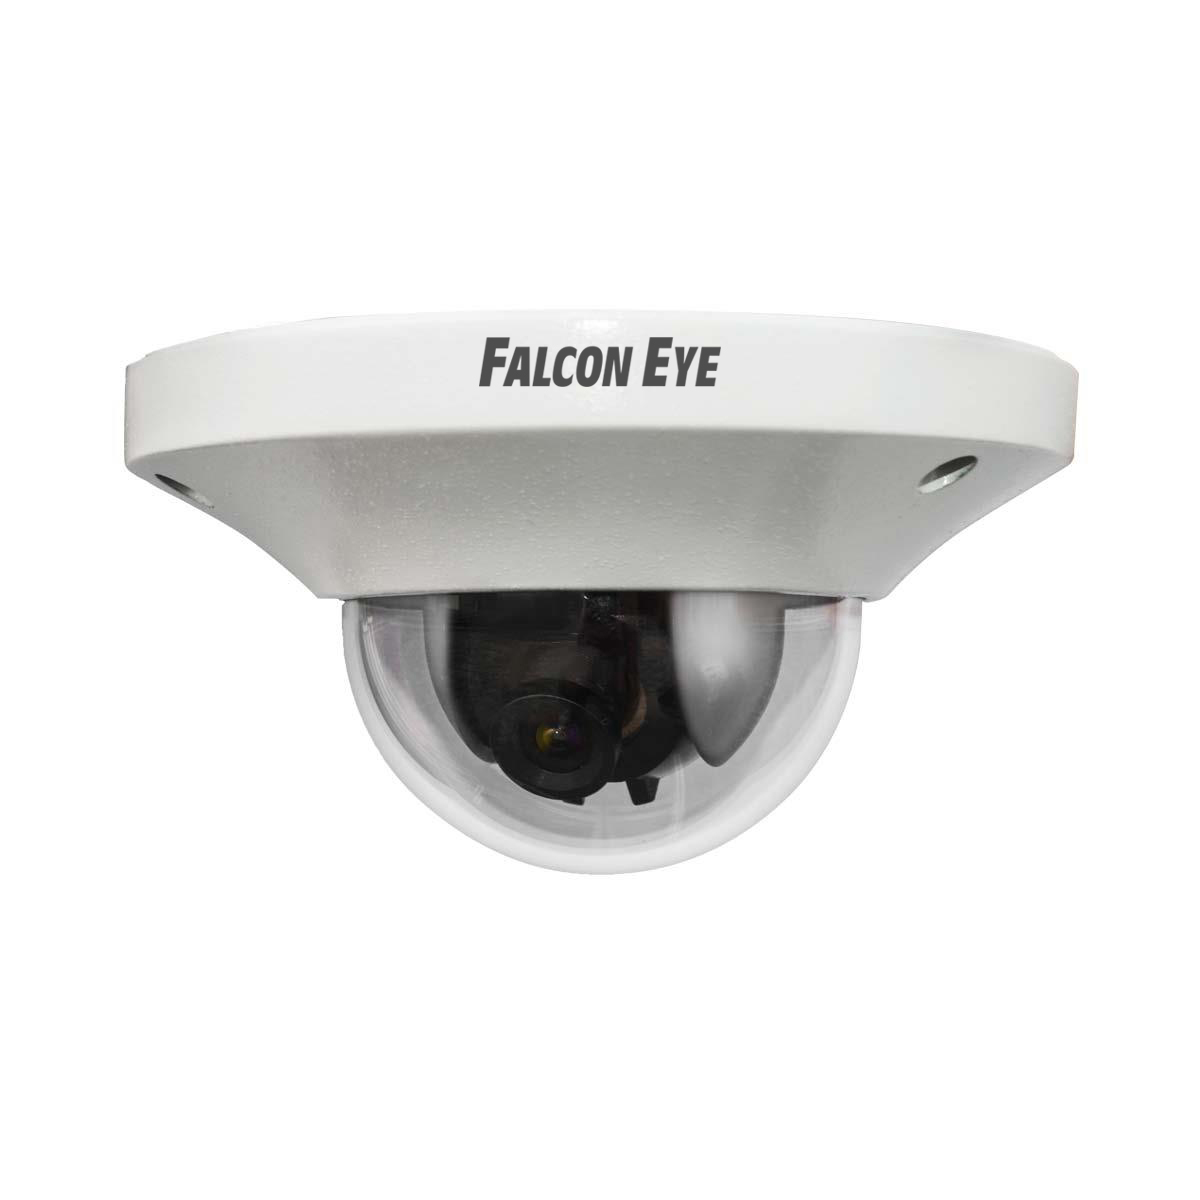 Камера видеонаблюдения Falcon eye Fe-ipc-dw200p аналоговая камера falcon eye fe da91a 10m